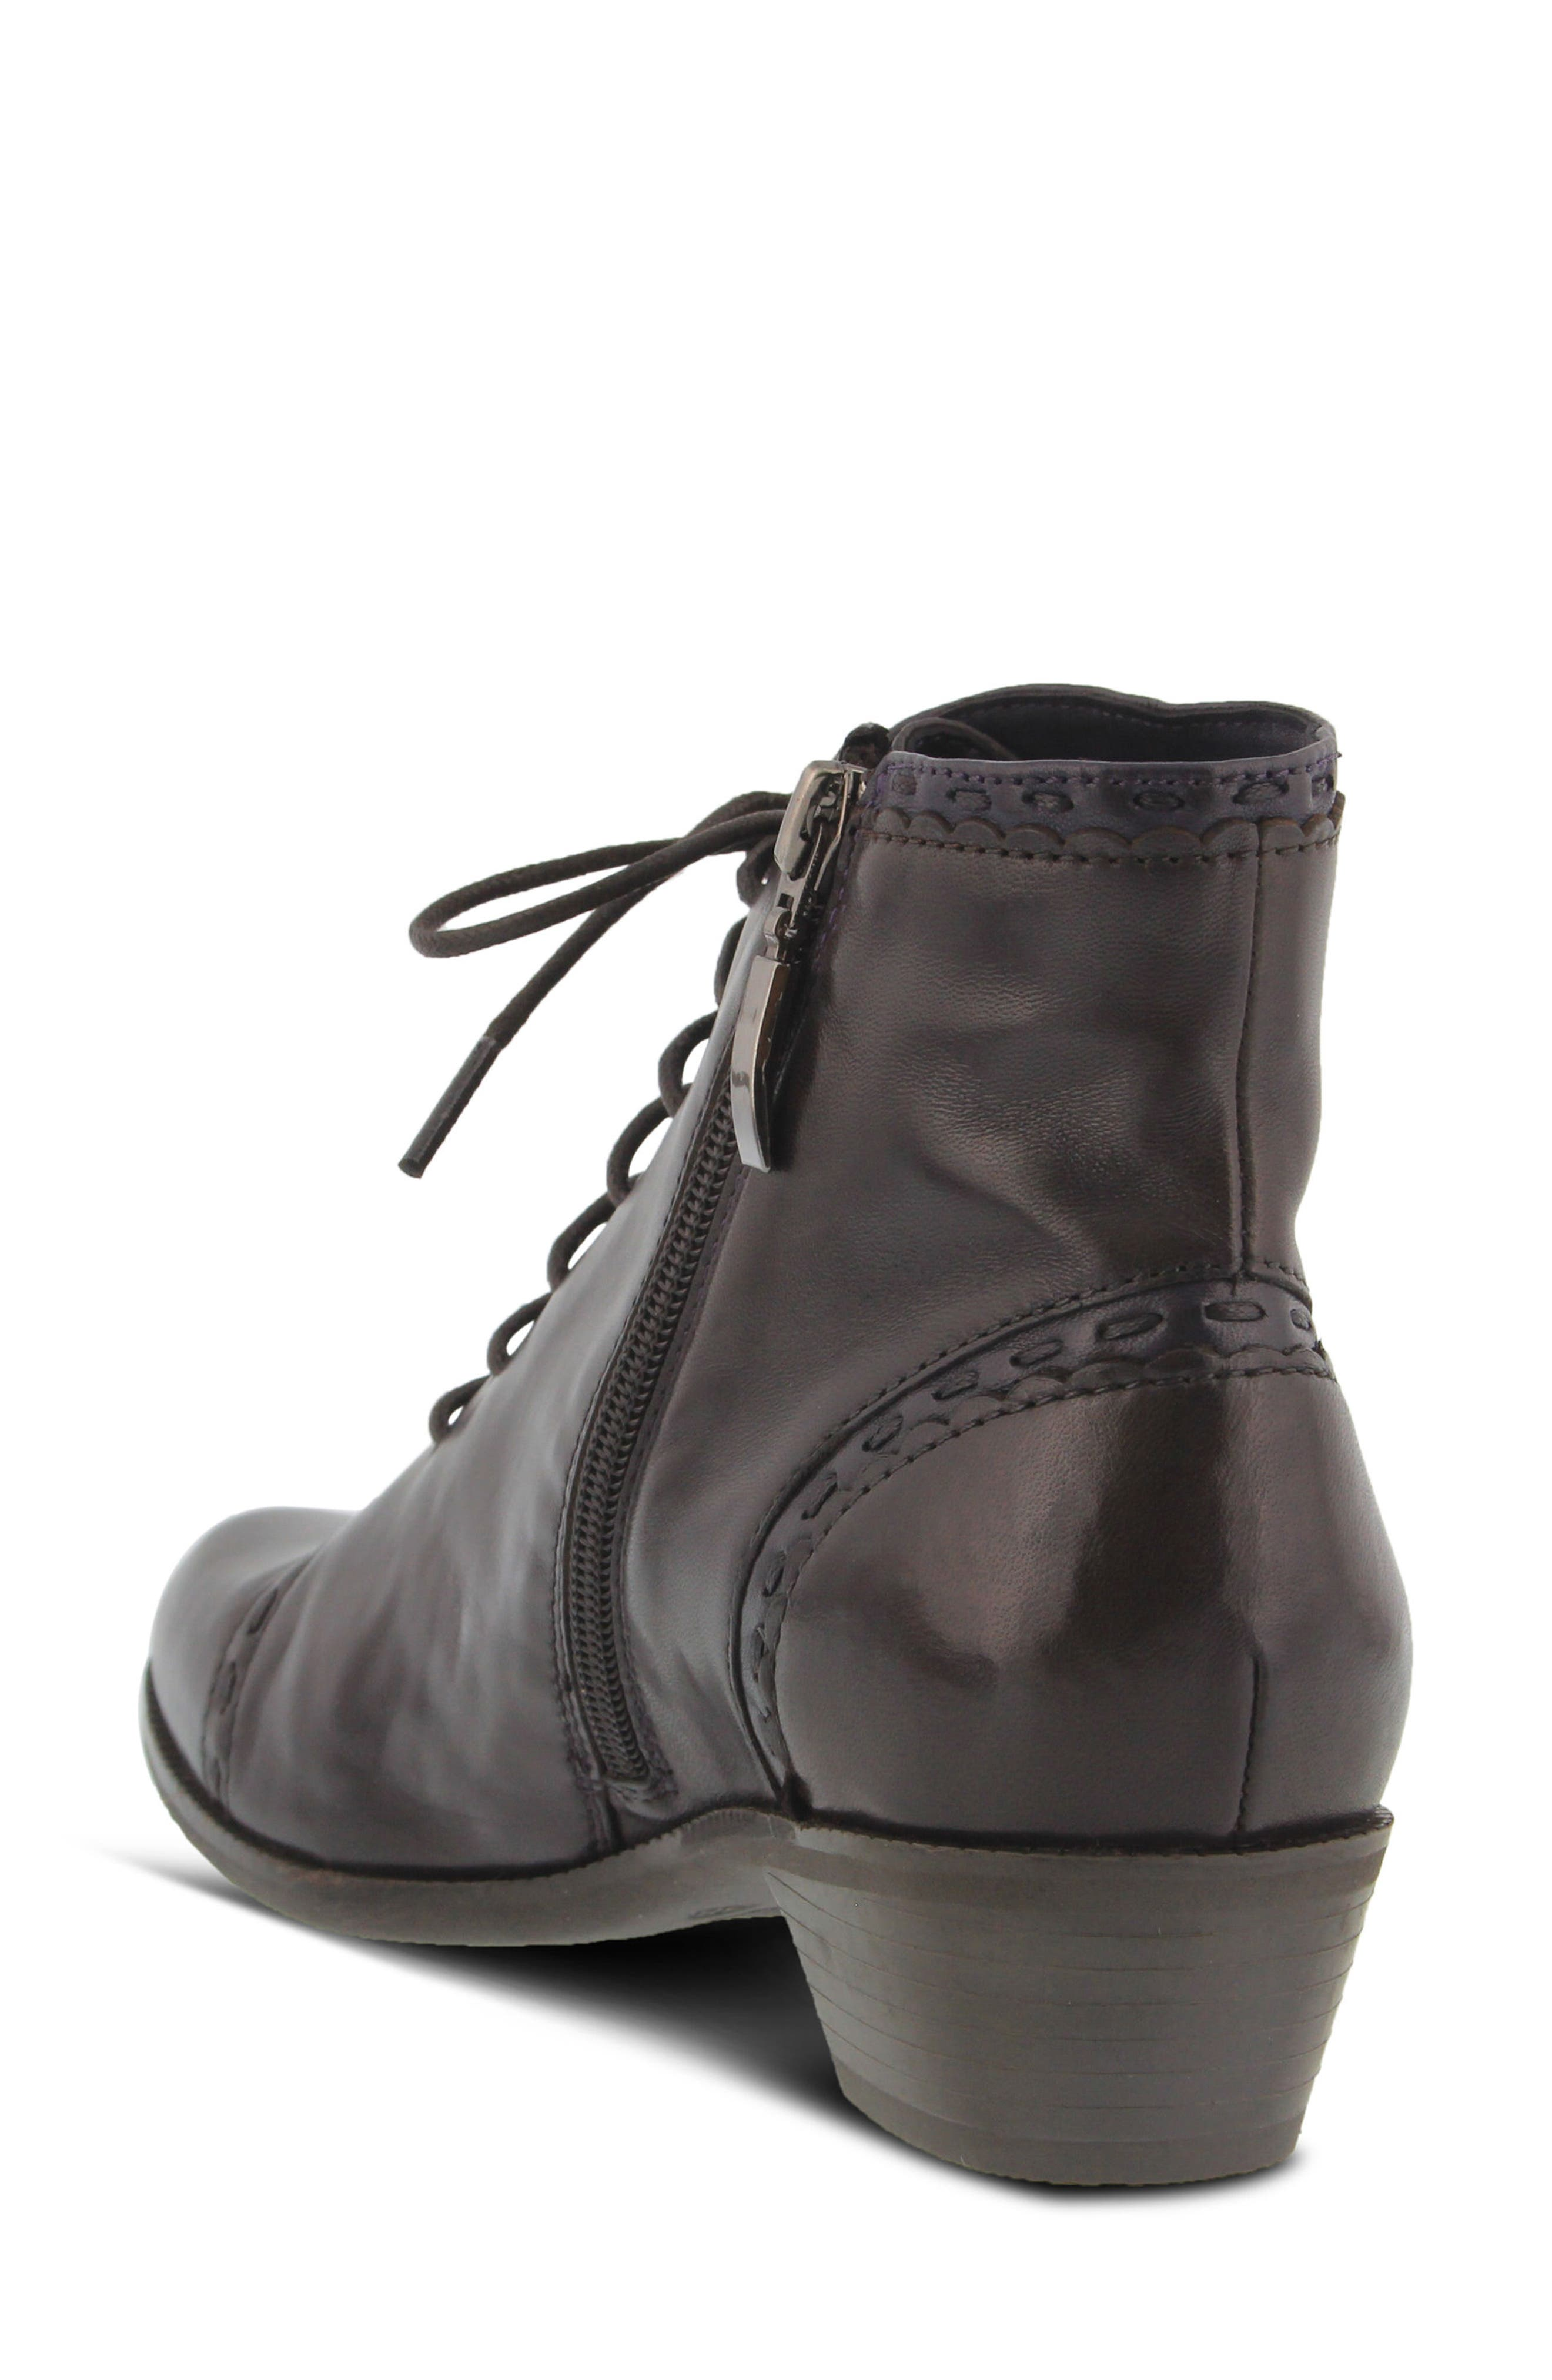 Jaru Lace-Up Bootie,                             Alternate thumbnail 2, color,                             Dark Brown Leather